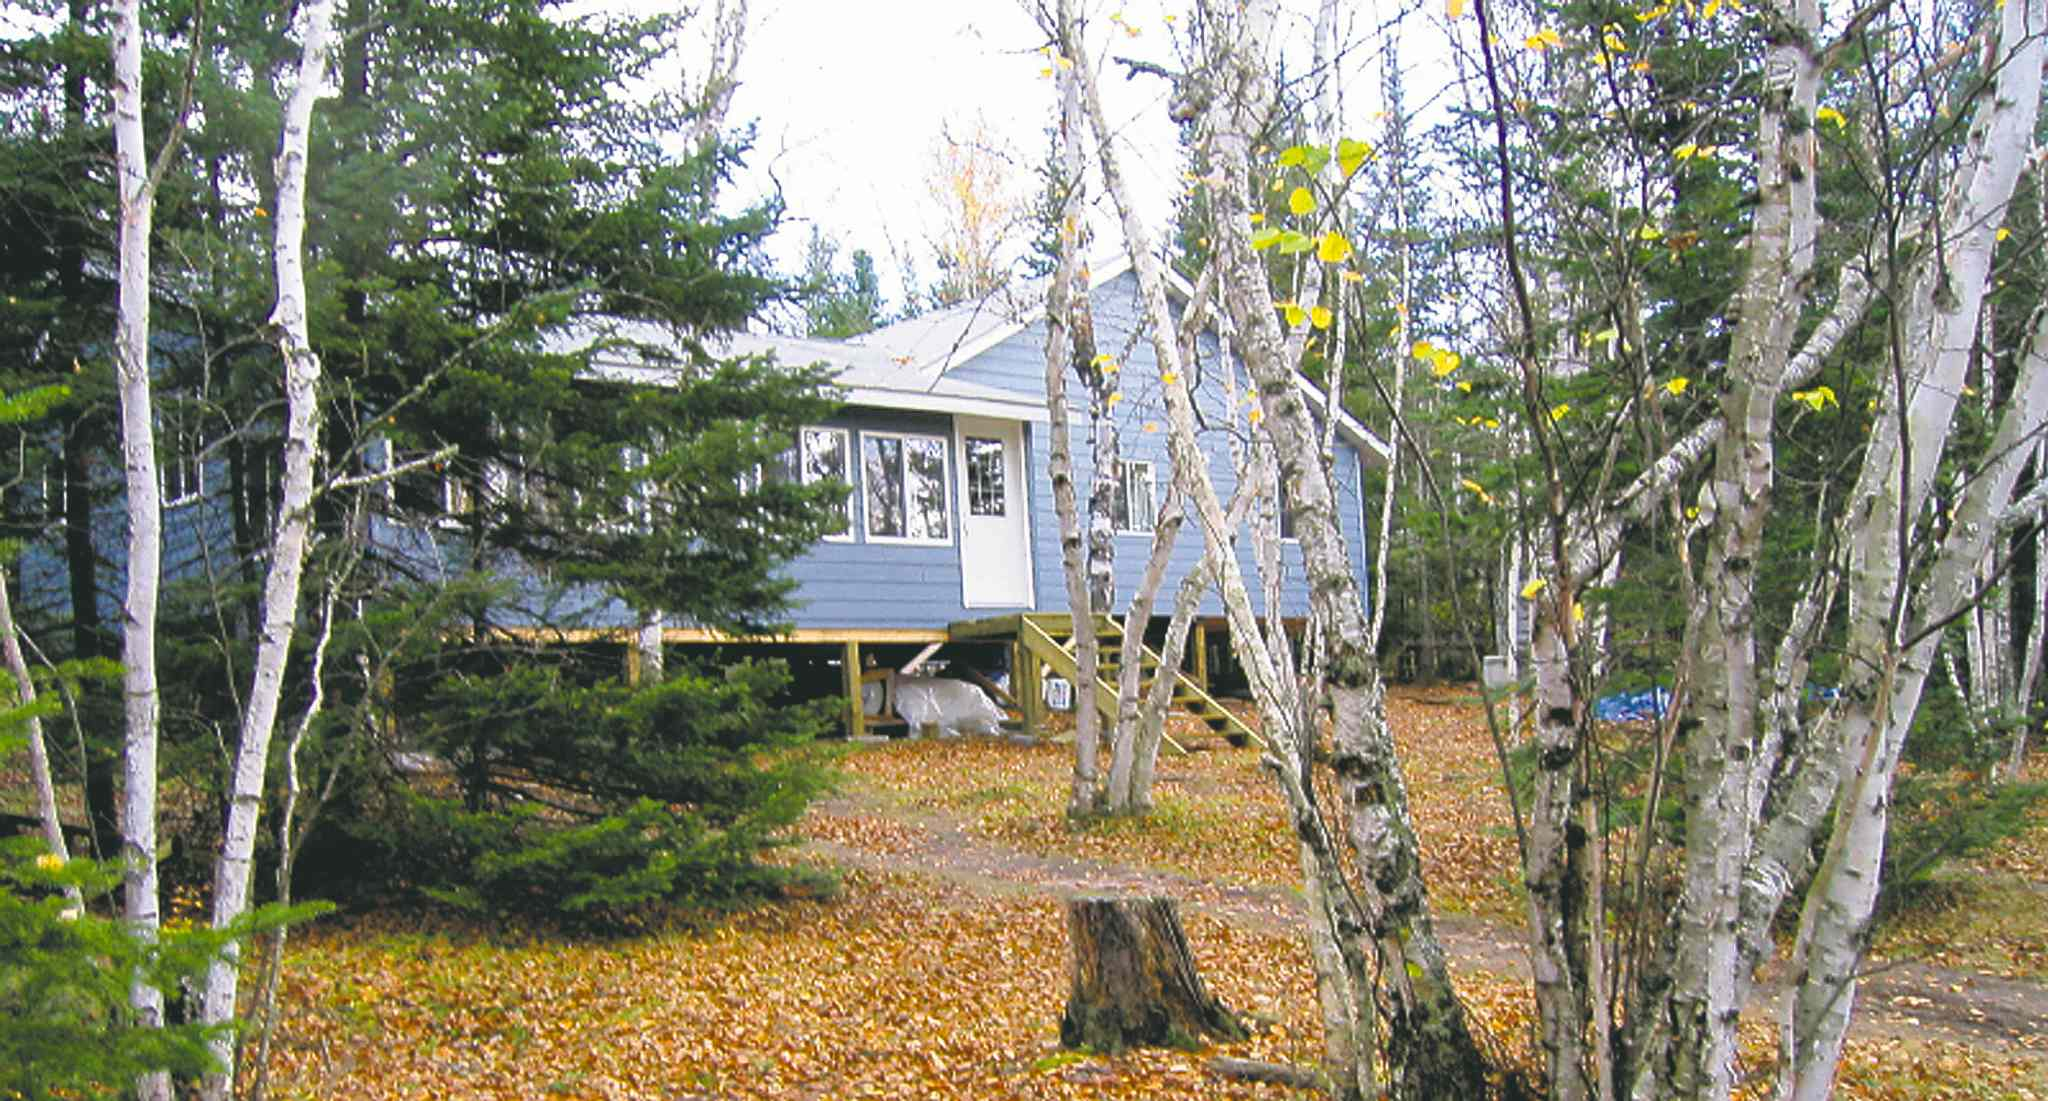 Minister Gord Mackintosh stresses the new fees for cottages in provincial parks such as the Whiteshell were subject to consultation with owners.